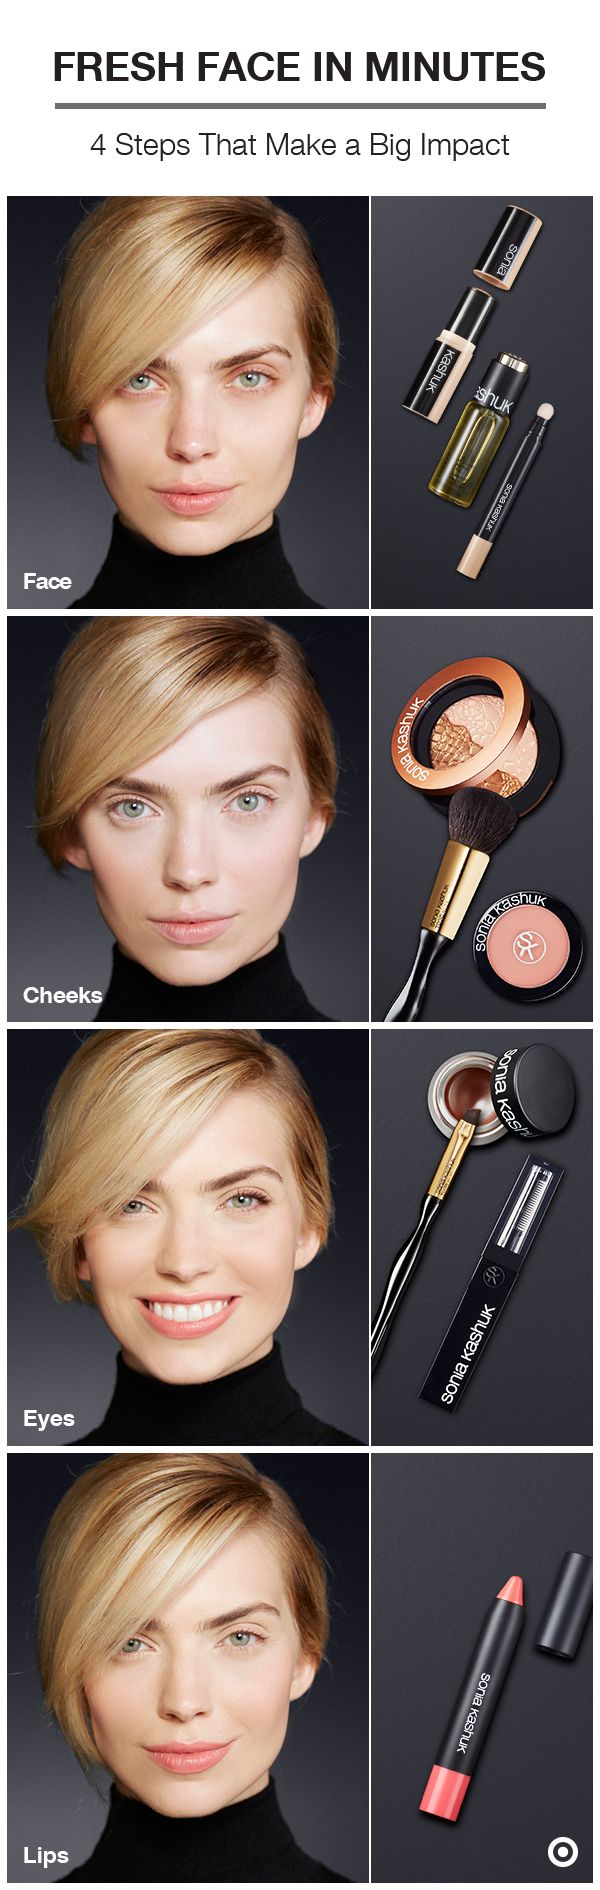 Get a fresh-faced look in just a few easy steps. 1. Create the perfect canvas with oil, foundation and concealer. 2. Dust a bit of blush on the apples of the cheeks; then, highlight the cheeks with a touch of the bronzer/highlighter duo. 3. Use a neutral-colored gel liner to define the eyes, and add a coat of mascara. 4. Finish the look with a pop of color on the lips.